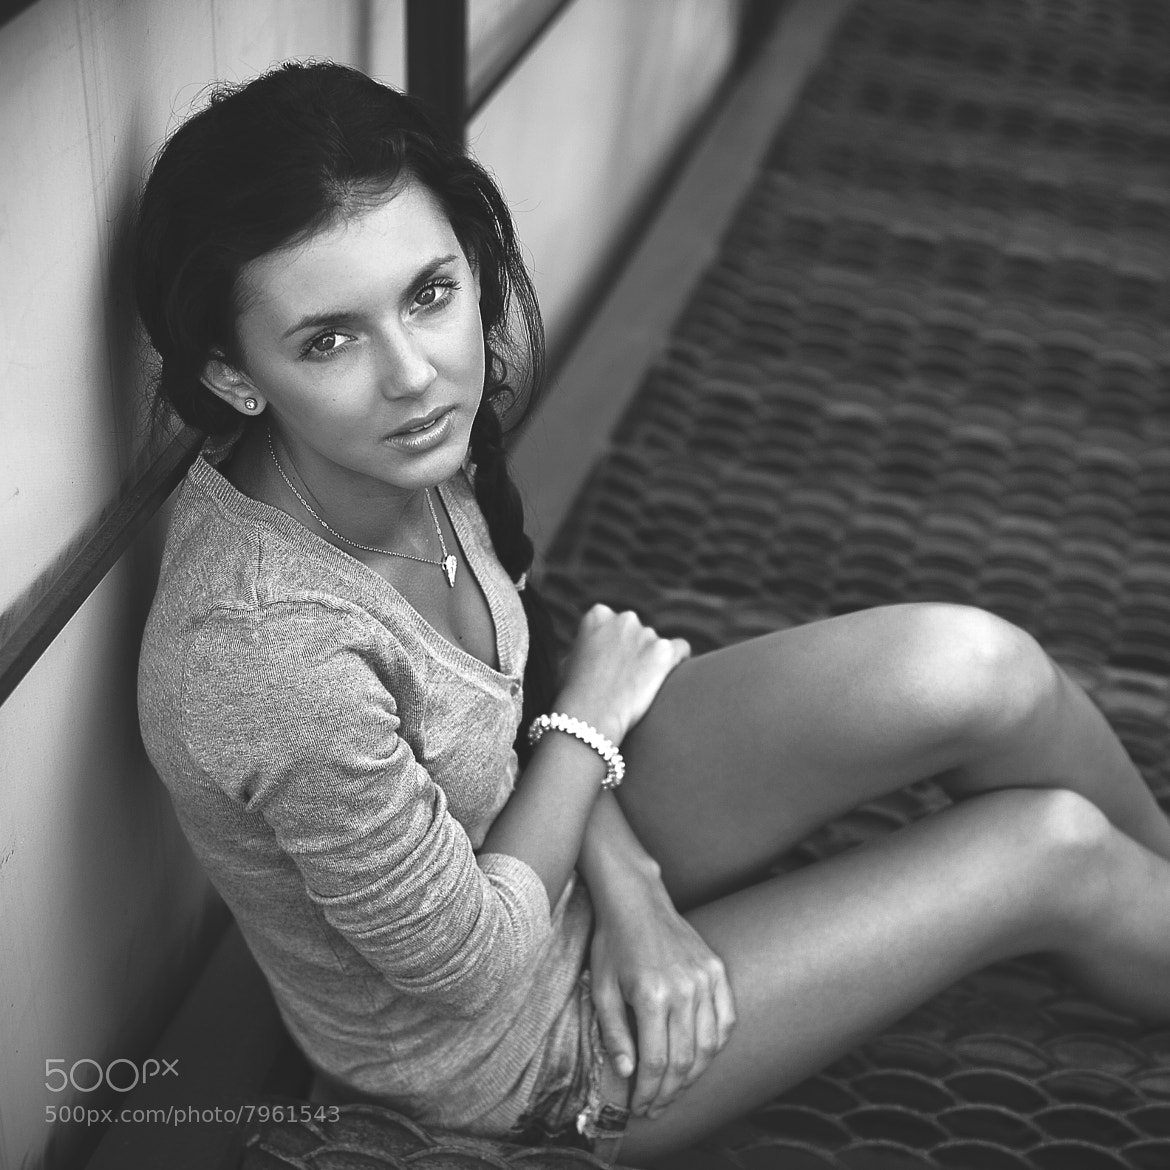 Photograph Untitled by Dmitry Nikitin on 500px